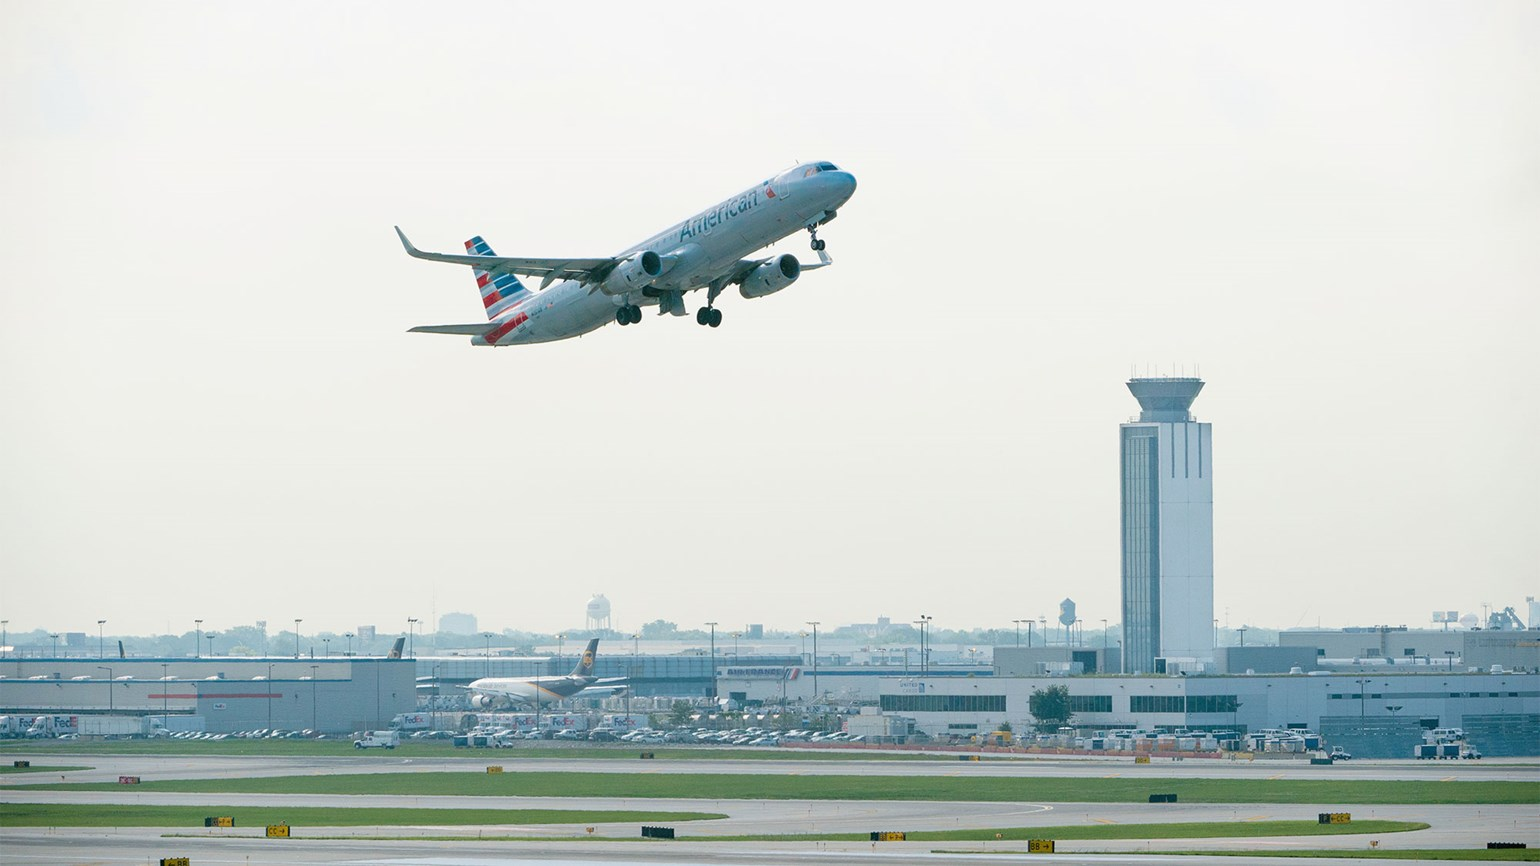 Chicago, American Airlines reach deal on O'Hare expansion